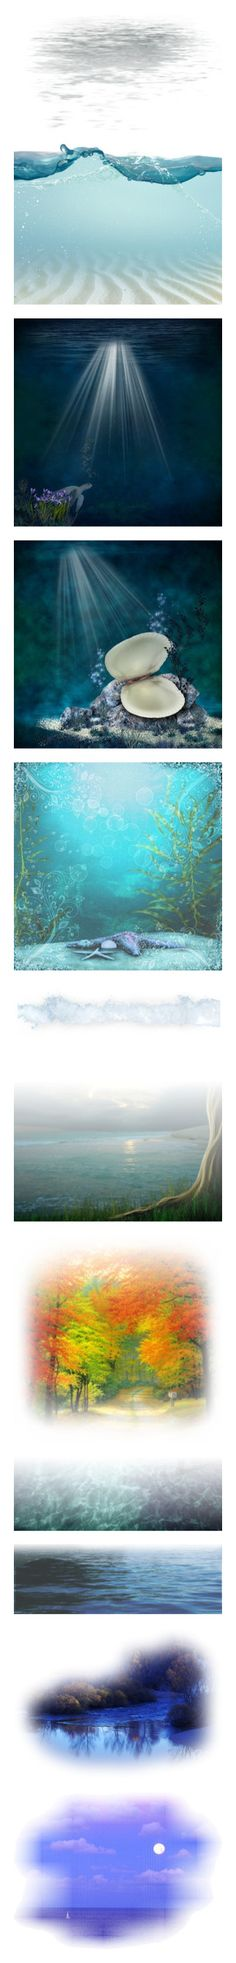 """""""Water"""" by stephanielee4 ❤ liked on Polyvore featuring effects, shadows, water, filler, decoration, backgrounds, borders, picture frame, ocean and sea"""